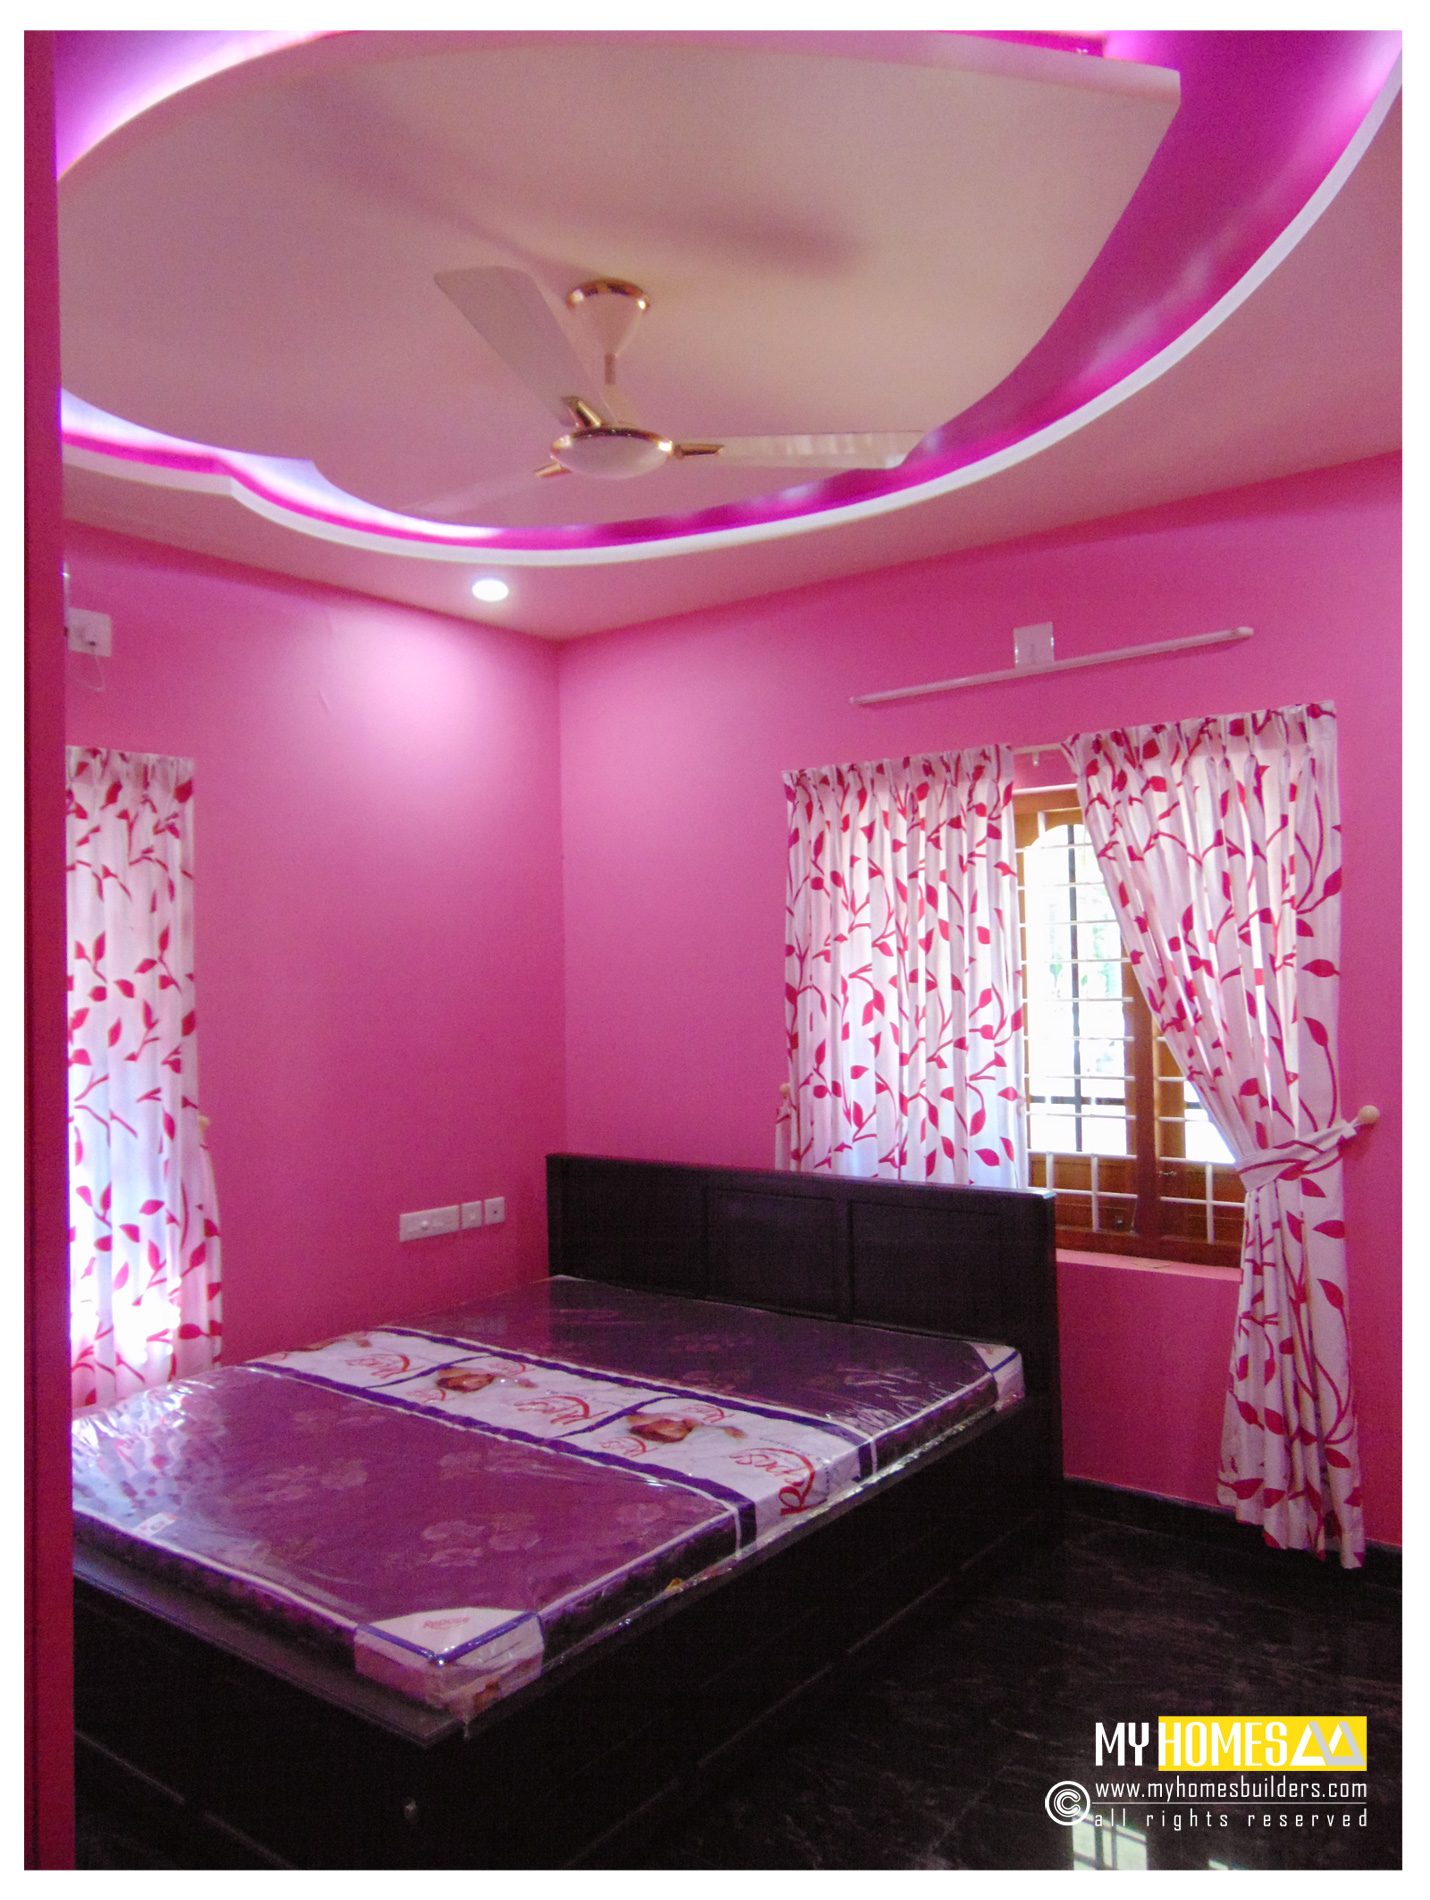 Simple style kerala bedroom designs ideas for home interior for Home design bedroom ideas